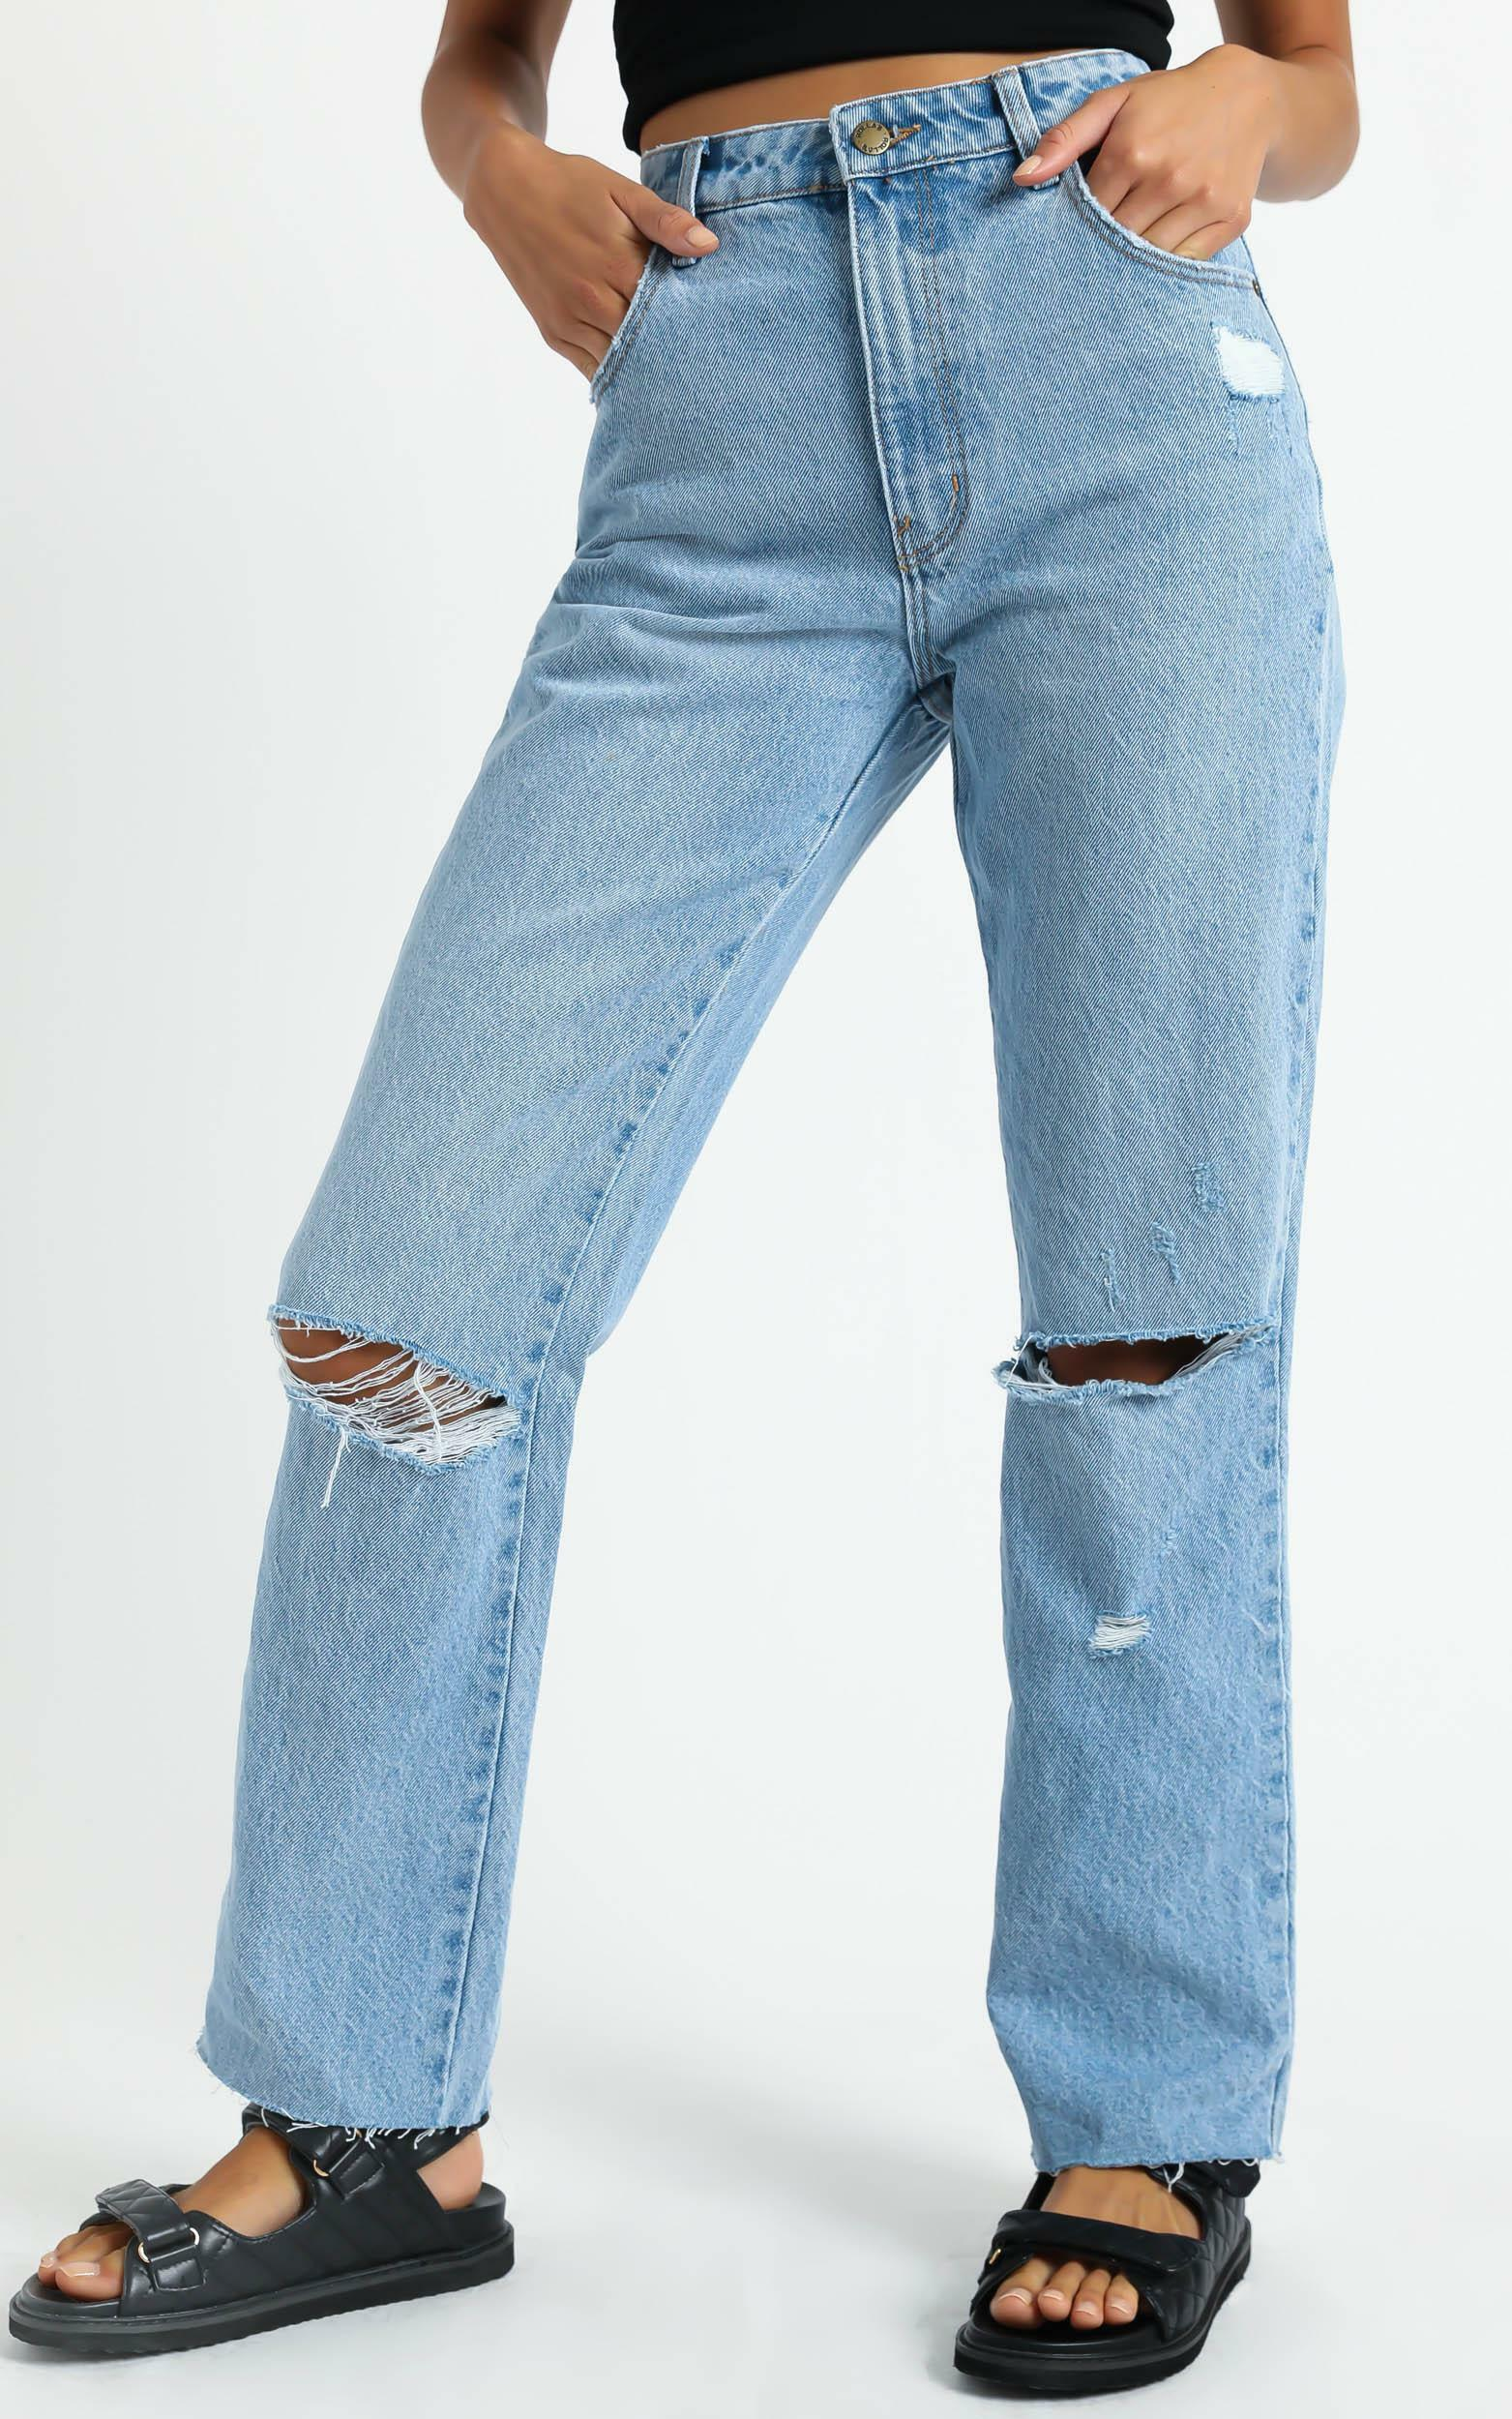 Rollas - Original Straight Jean in City Worn - 6 (XS), BLU15, hi-res image number null